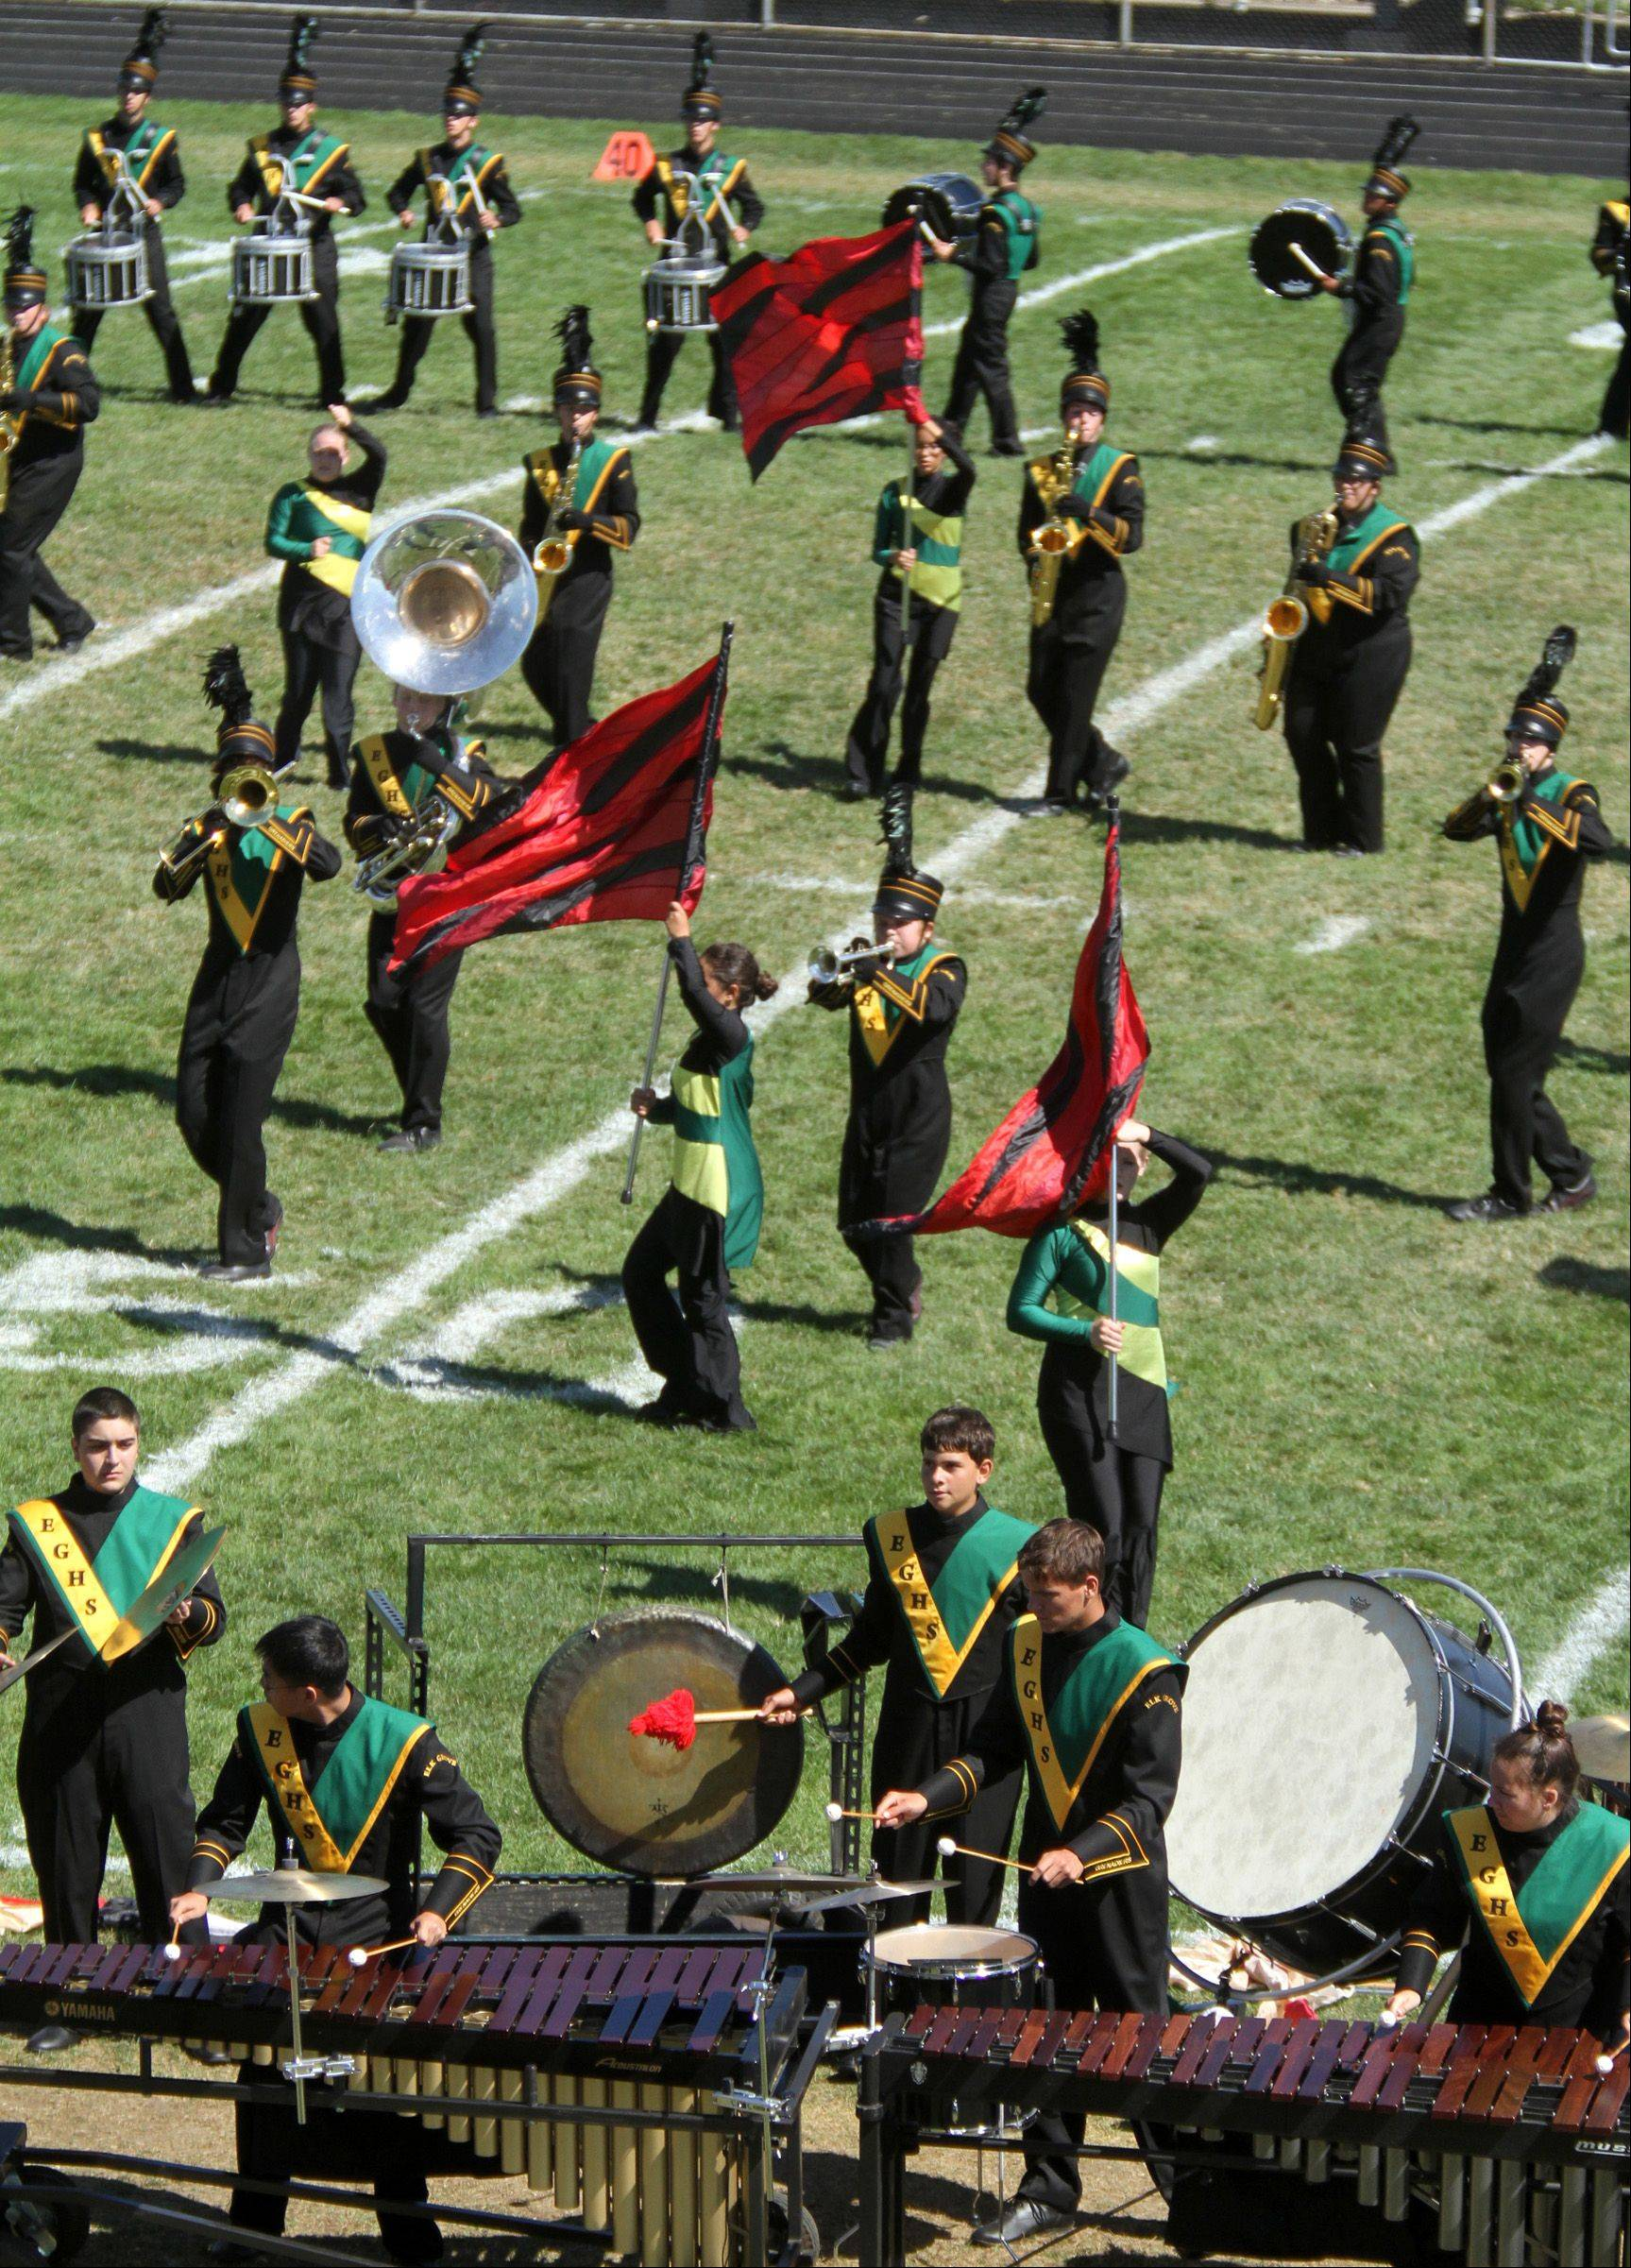 The Elk Grove High School marching band, shown in September at Lake Park High School in Roselle, will perform on a much larger stage Wednesday night when they take to the turf of the Mercedes-Benz Superdome in New Orleans for the halftime show of the Allstate Sugar Bowl.